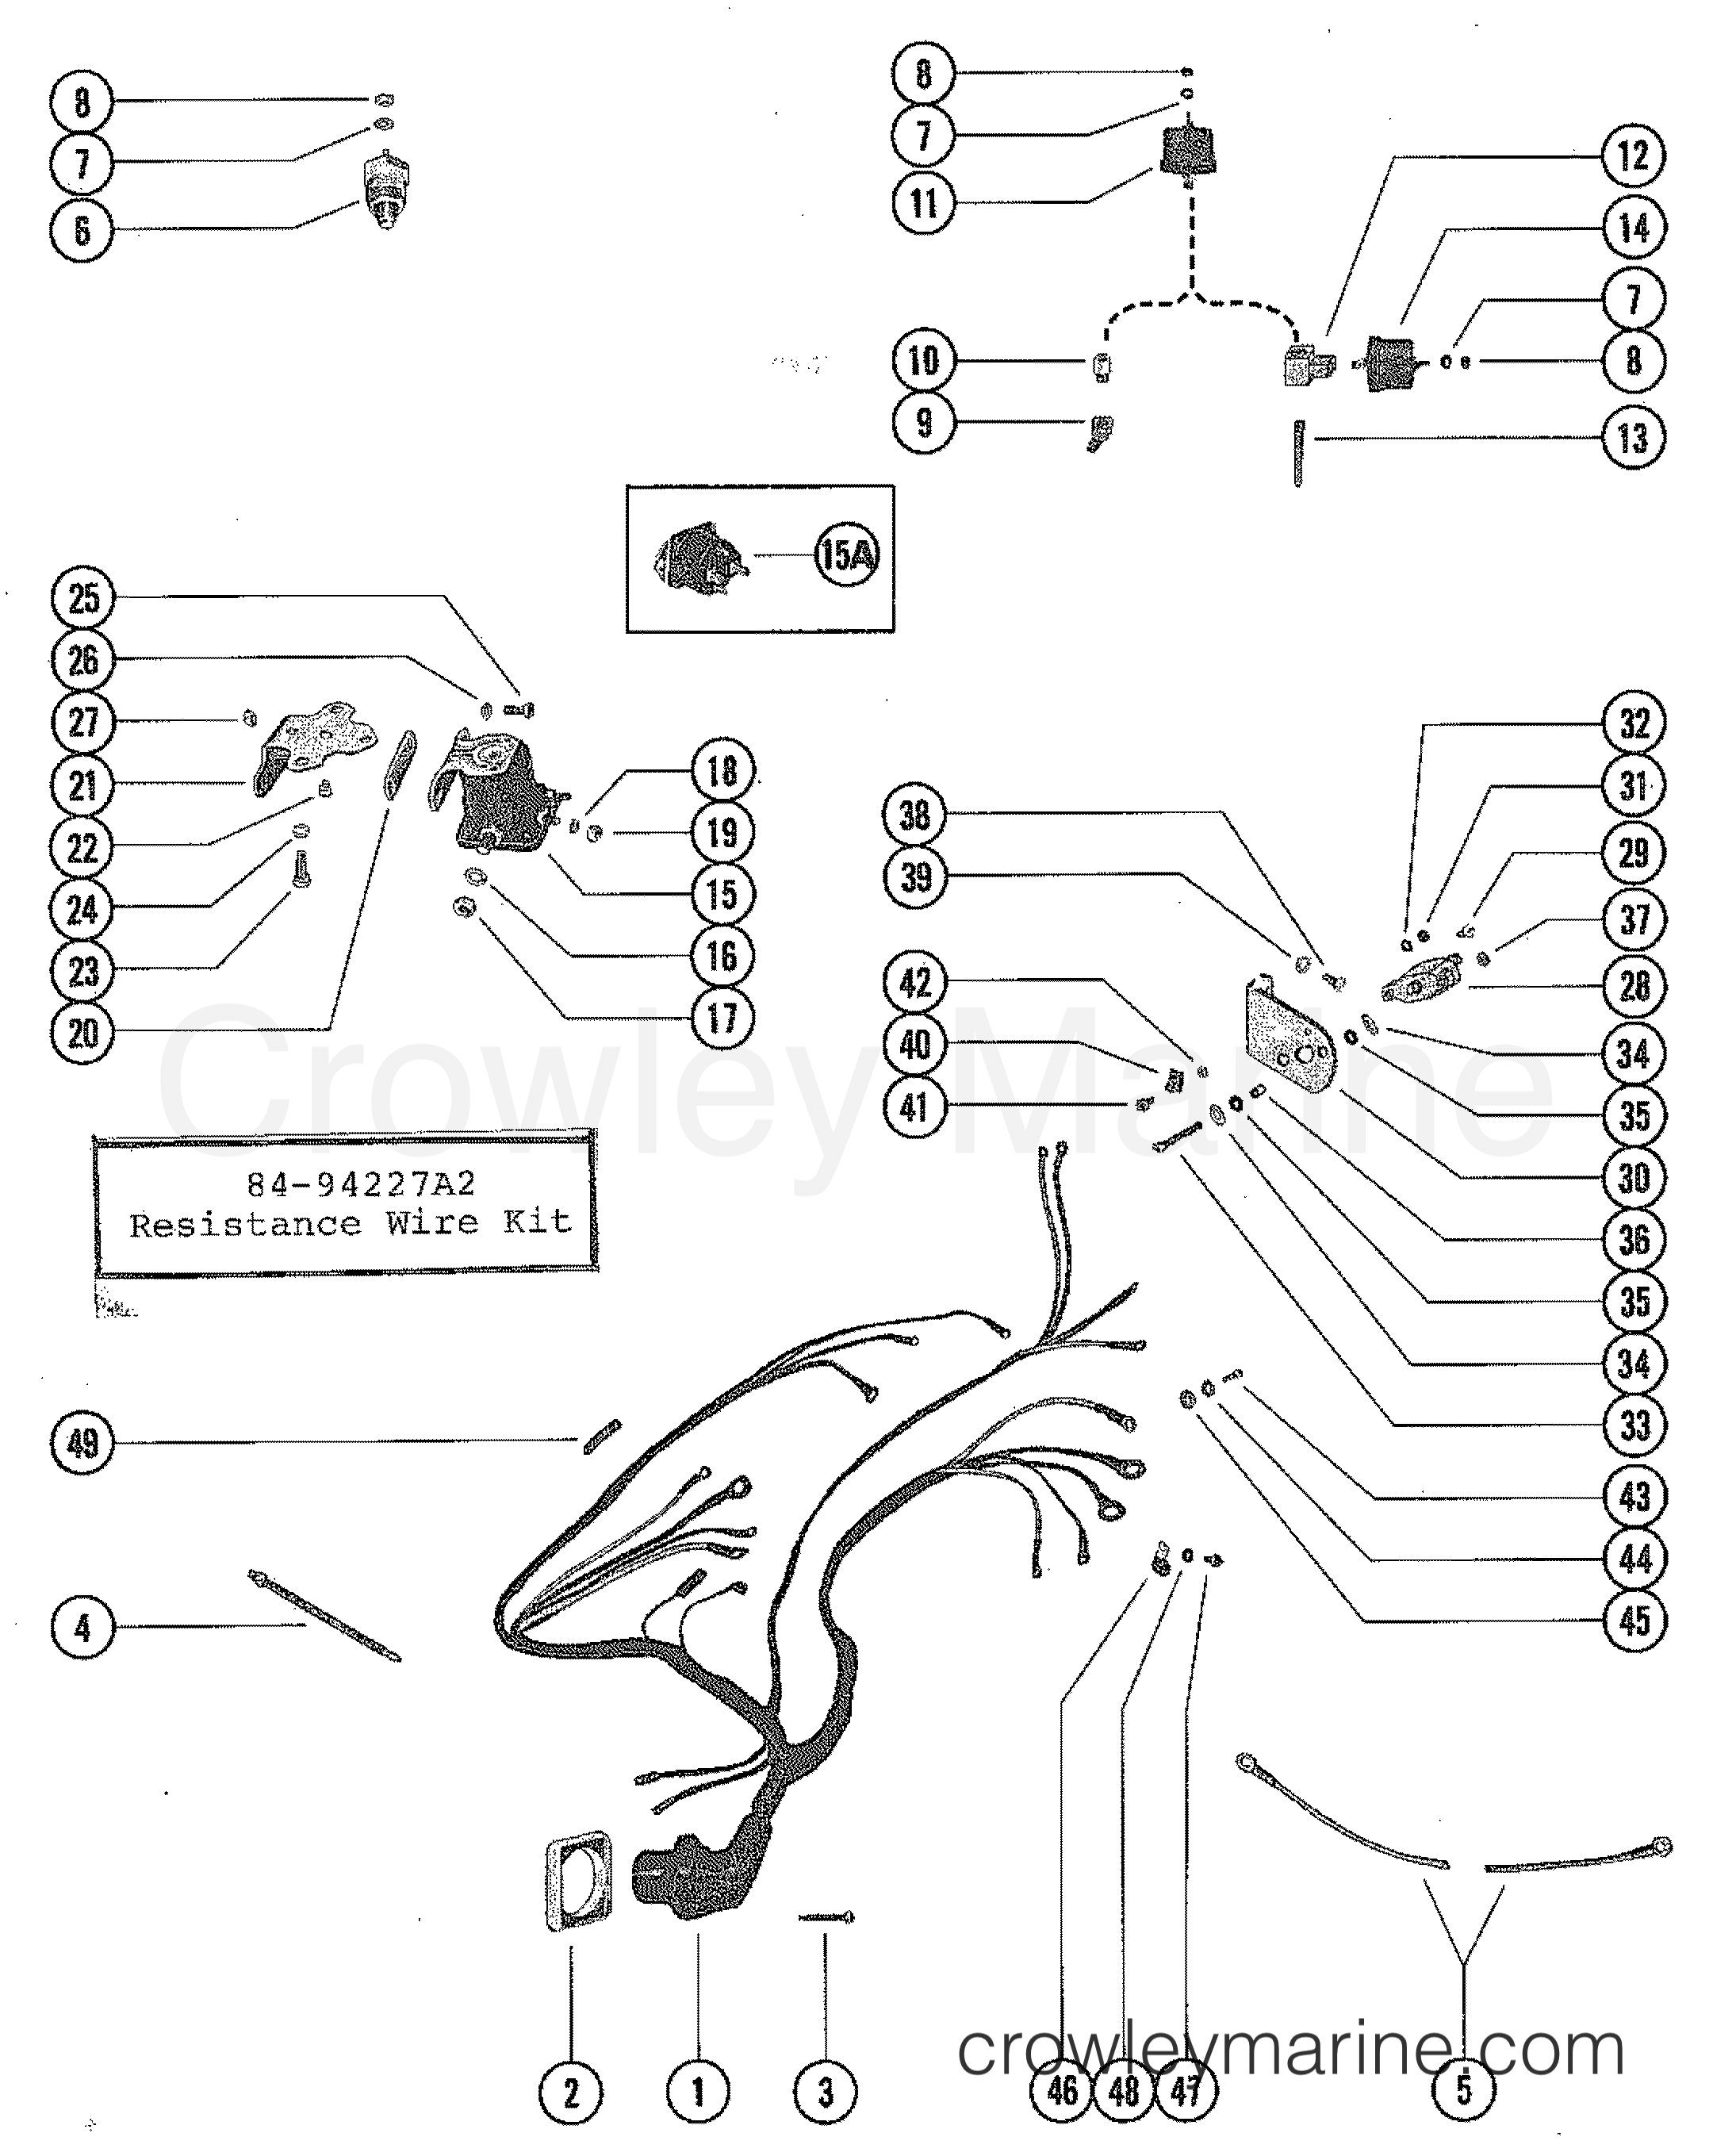 wiring harness and starter solenoid 1975 mercruiser 165  7 4 mercruiser wiring diagram wiring